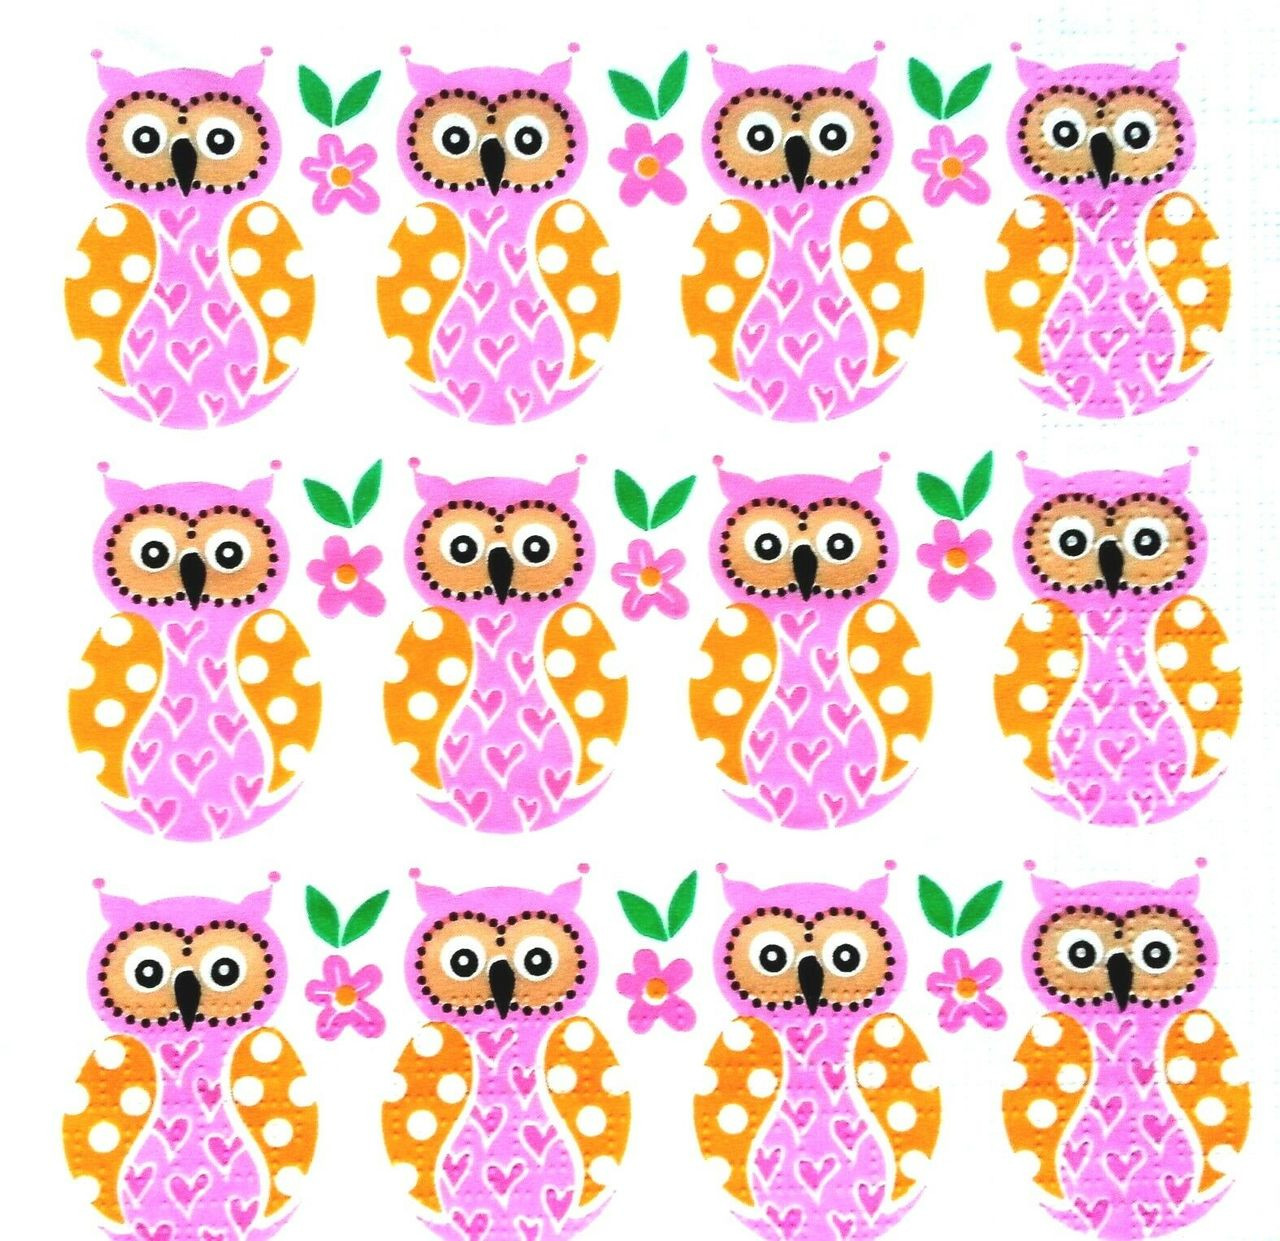 Decoupage Tissue Paper 4 X Single Table Paper Napkins Craft Party For Decoupage Little Owls Art Craft Supplies Tallergrafico Com Uy